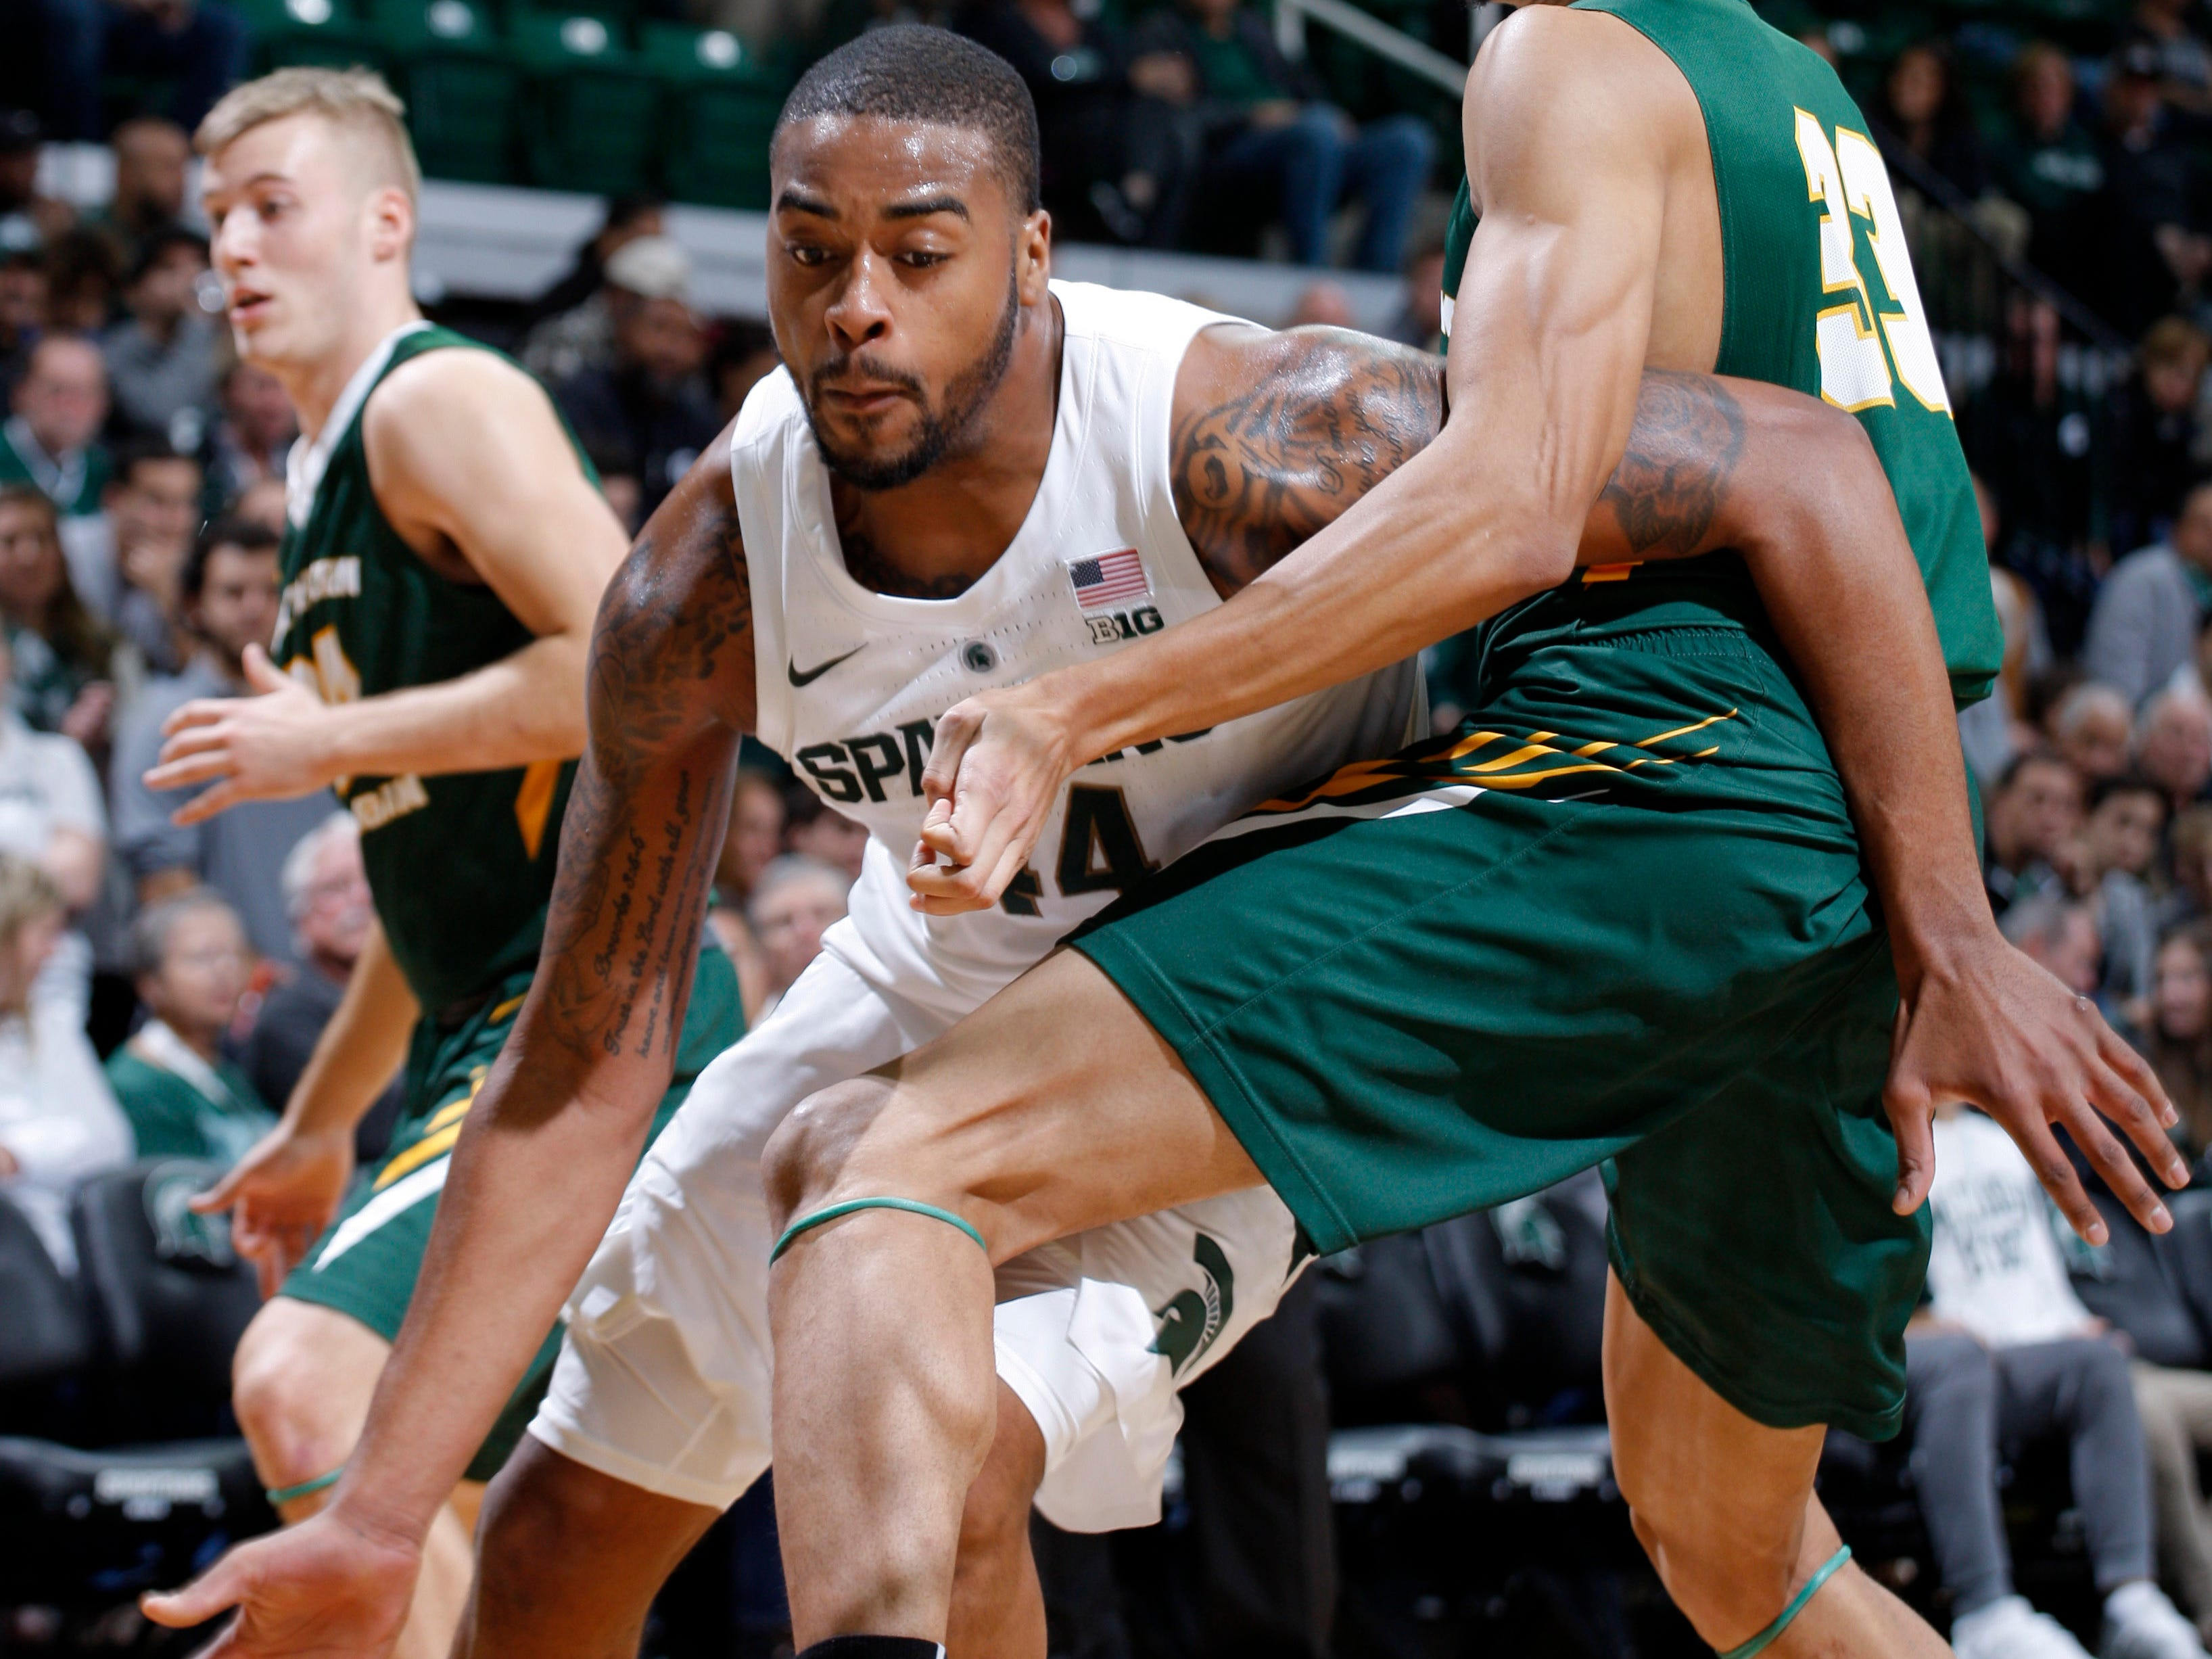 Michigan State's Nick Ward, left, drives against Northern Michigan's Myles Howard, Tuesday, Oct. 30, 2018, in East Lansing, Mich.